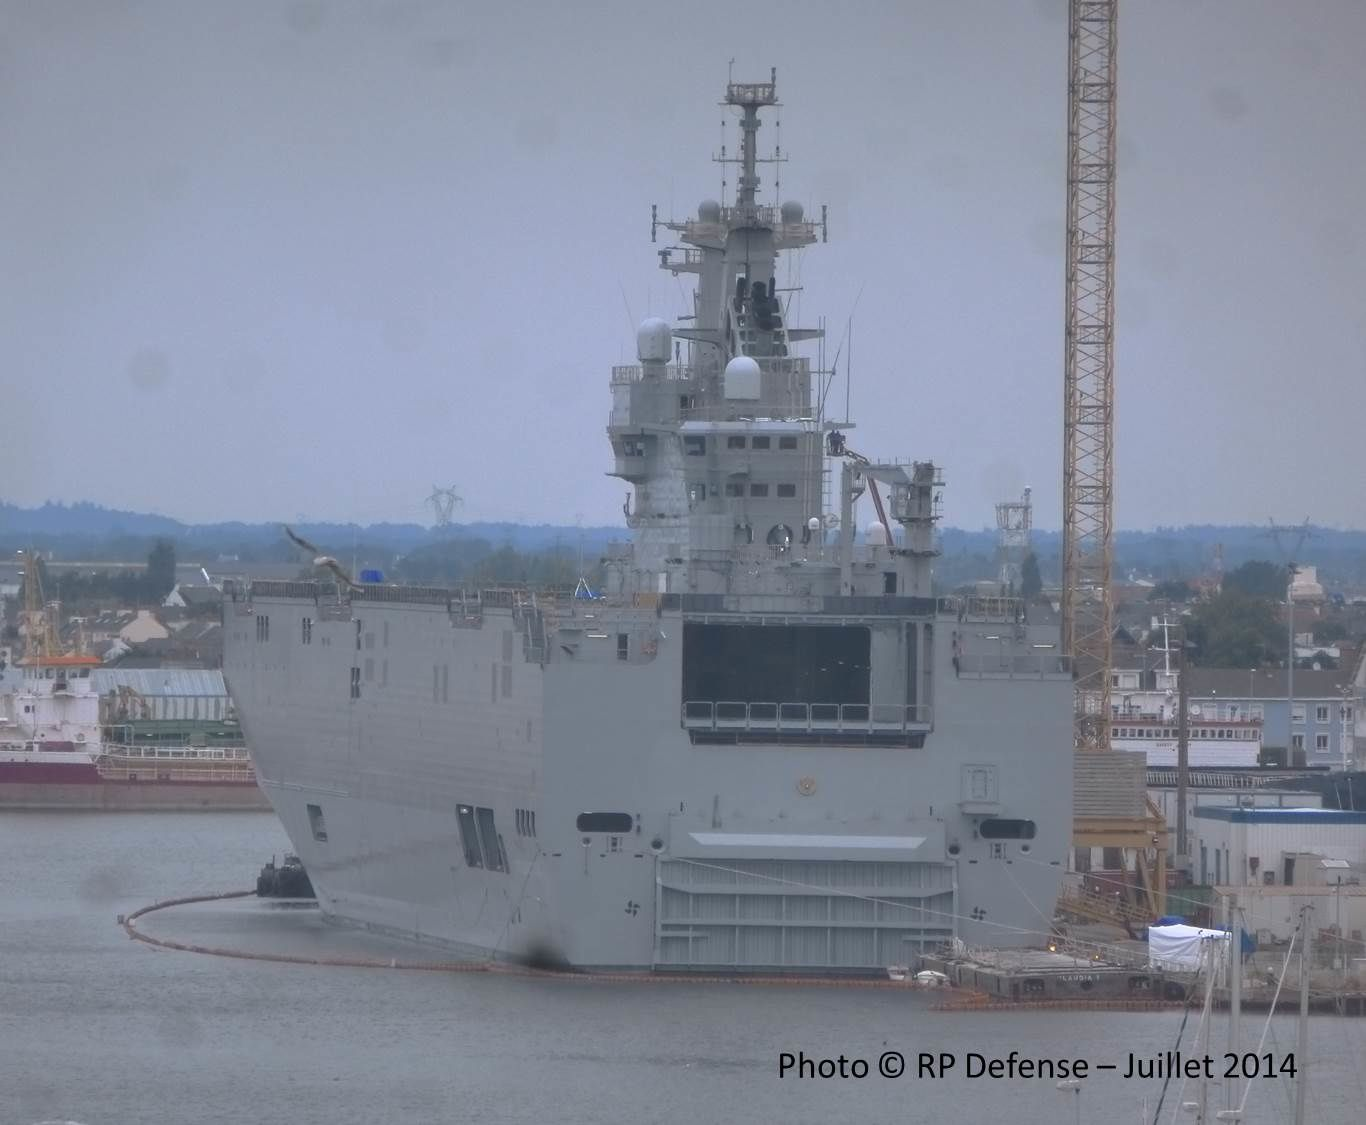 The Vladivostok amphibious assault ship of the Mistral class at the STX Europe shipyard in Saint-Nazaire